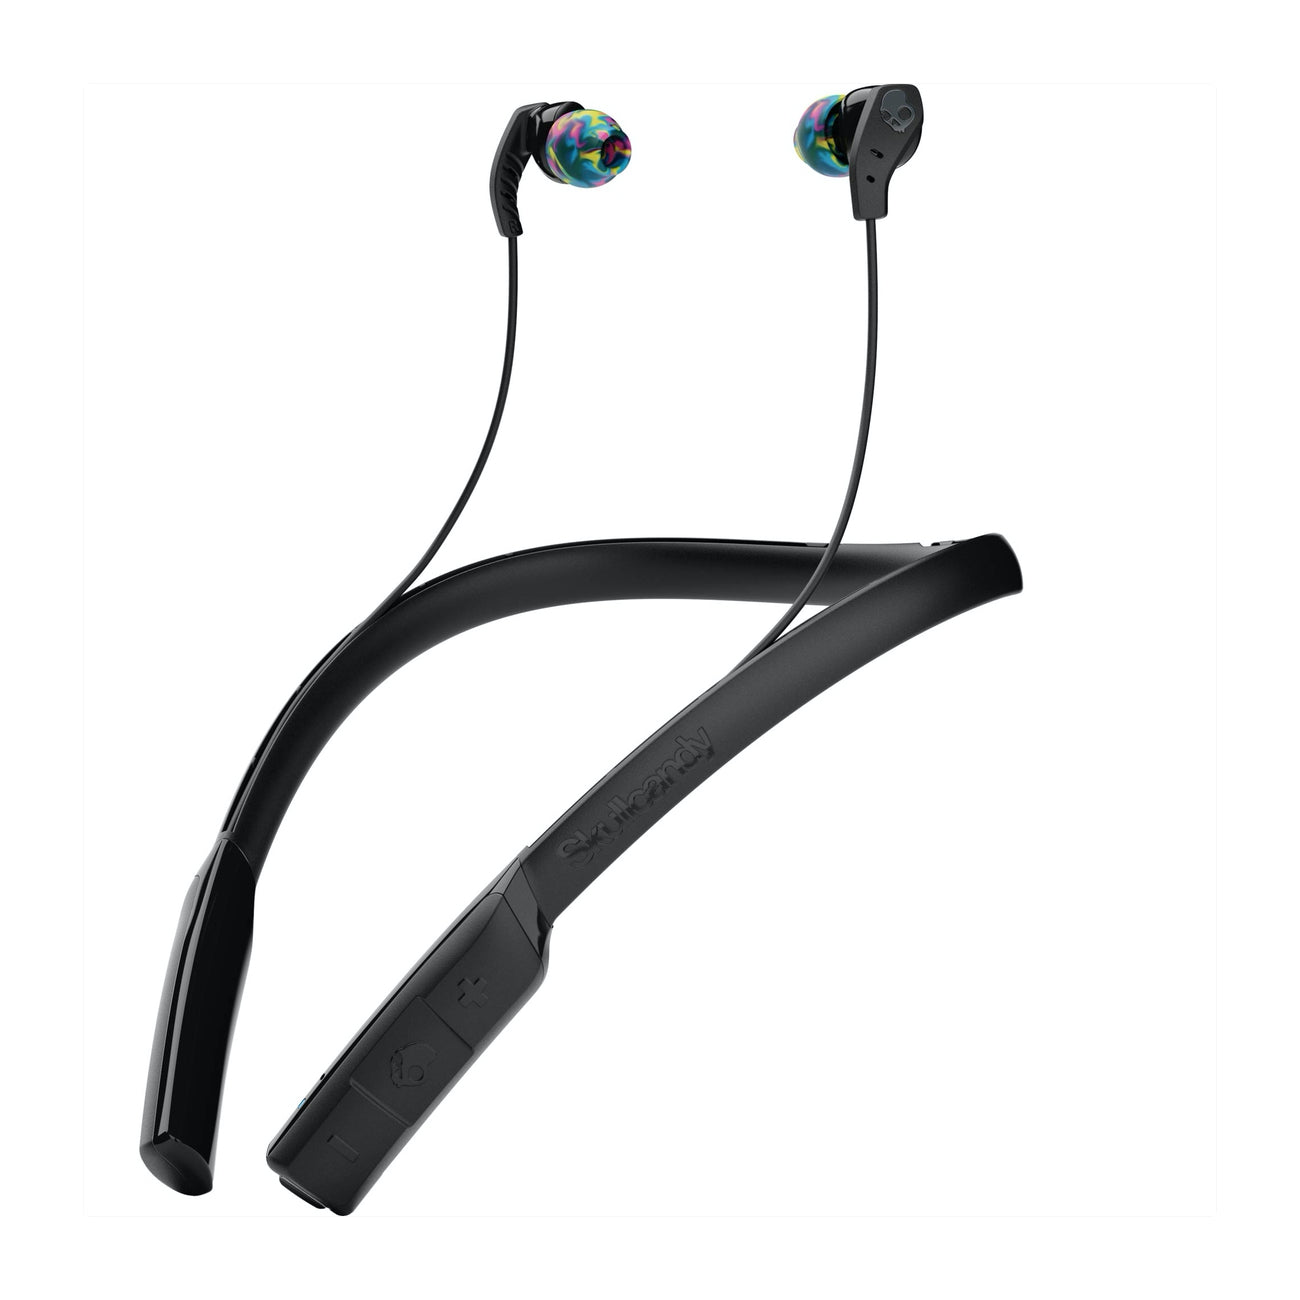 Audifonos SkullCandy Method Wireless - Aqua Zone